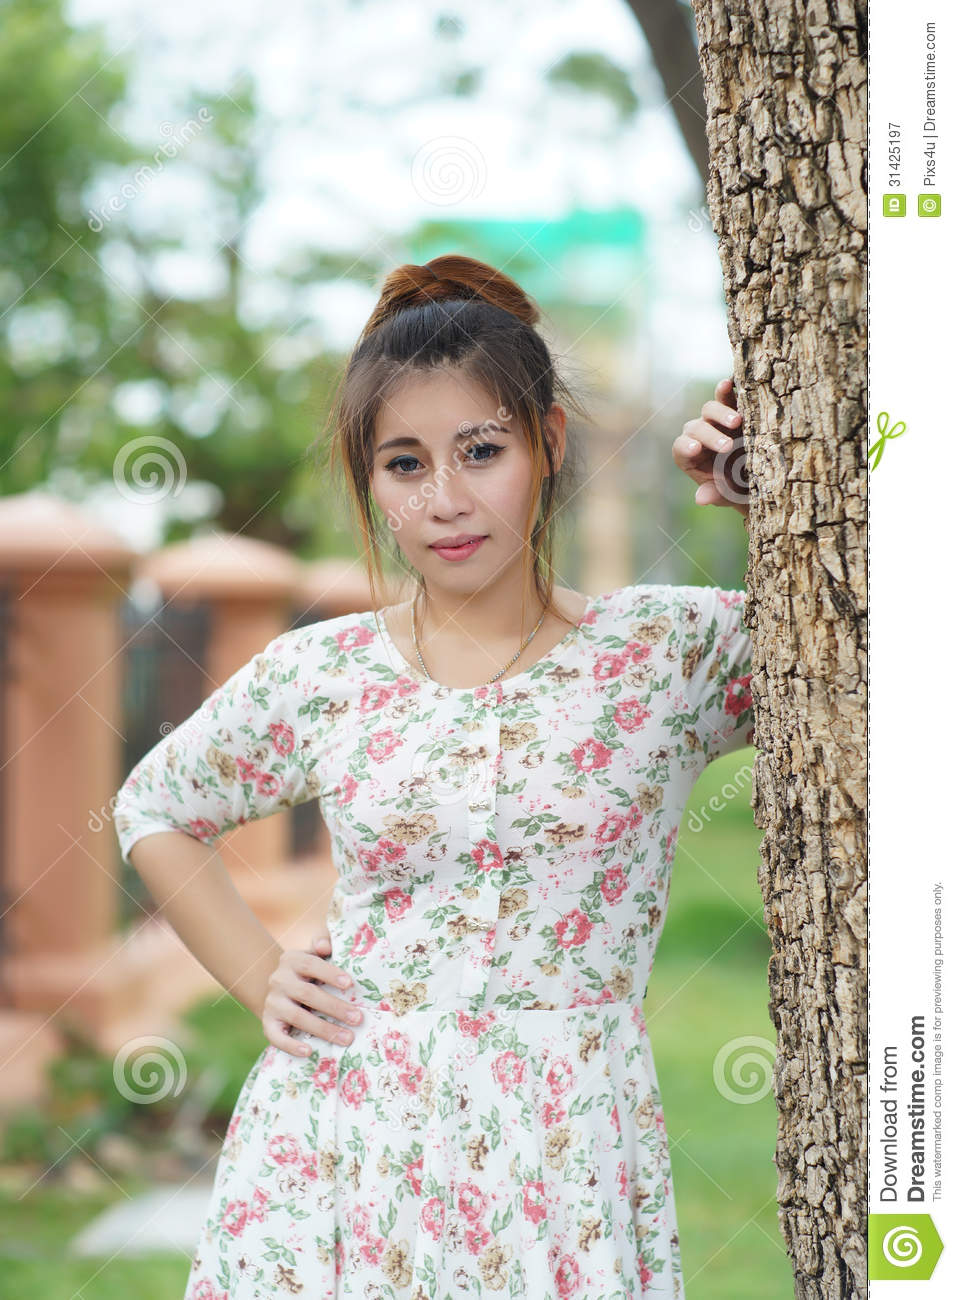 club outdoor woman Asian